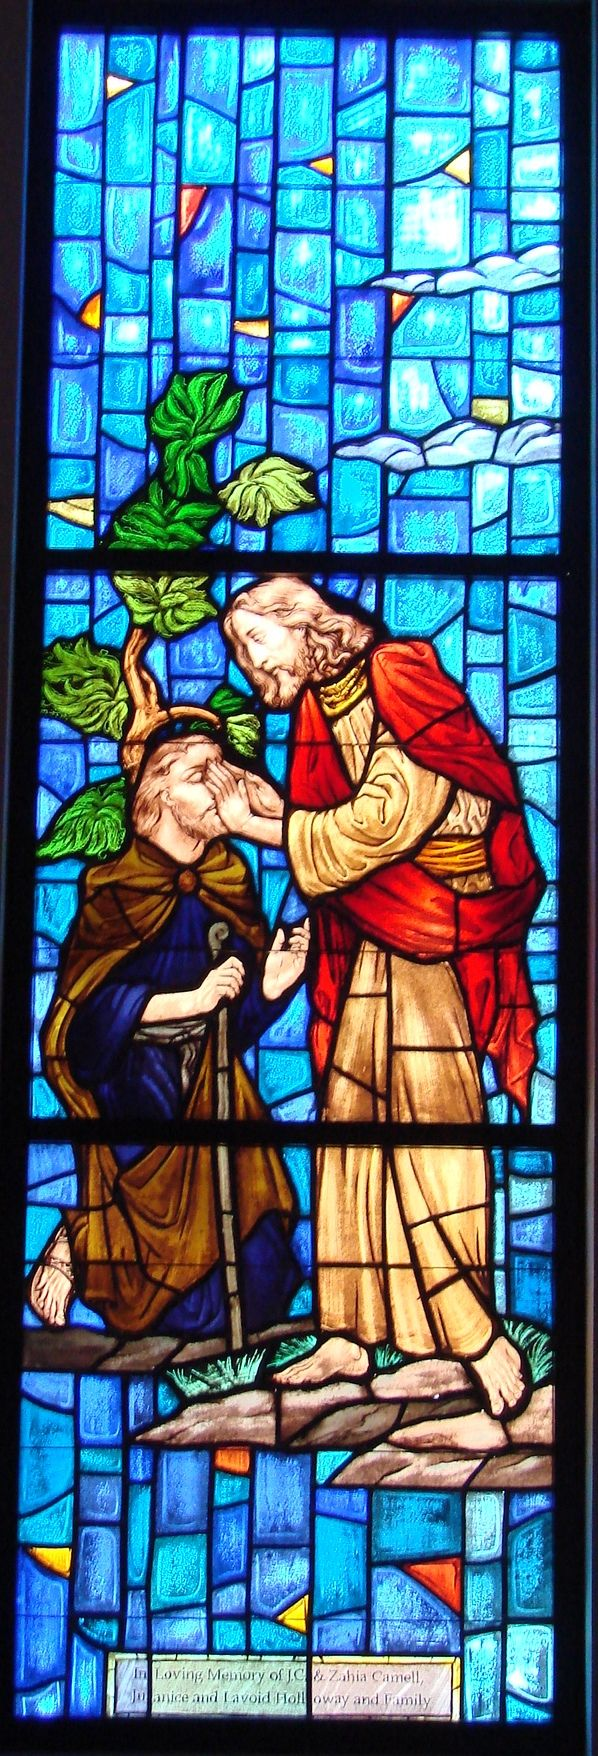 Jesus Depicting Performing One Of His Many Miracles Here Is Healing The Blind Man